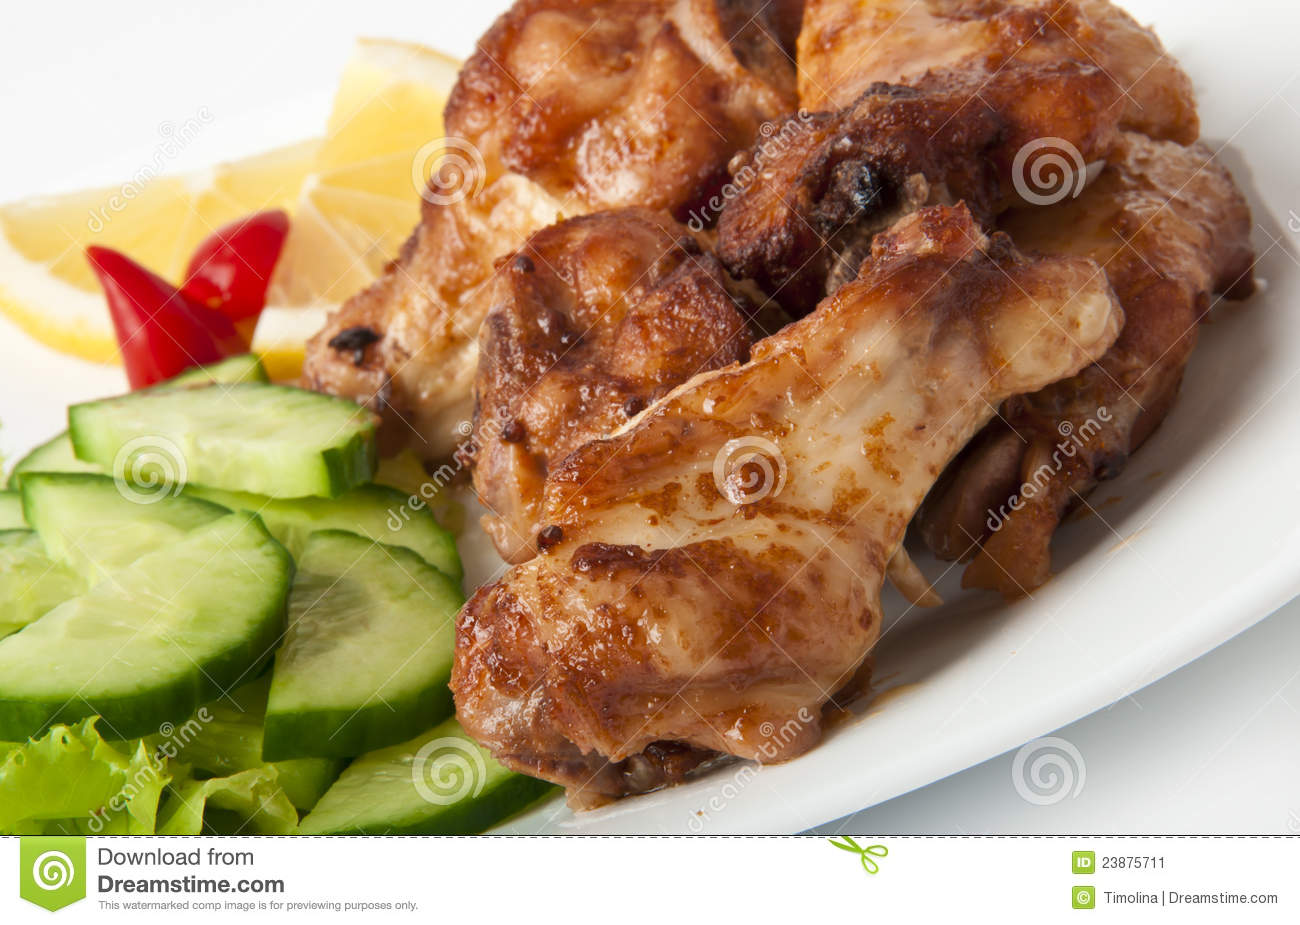 Download Grilled Chicken On A White Plate Stock Image - Image of nutrition, cucumbers: 23875711